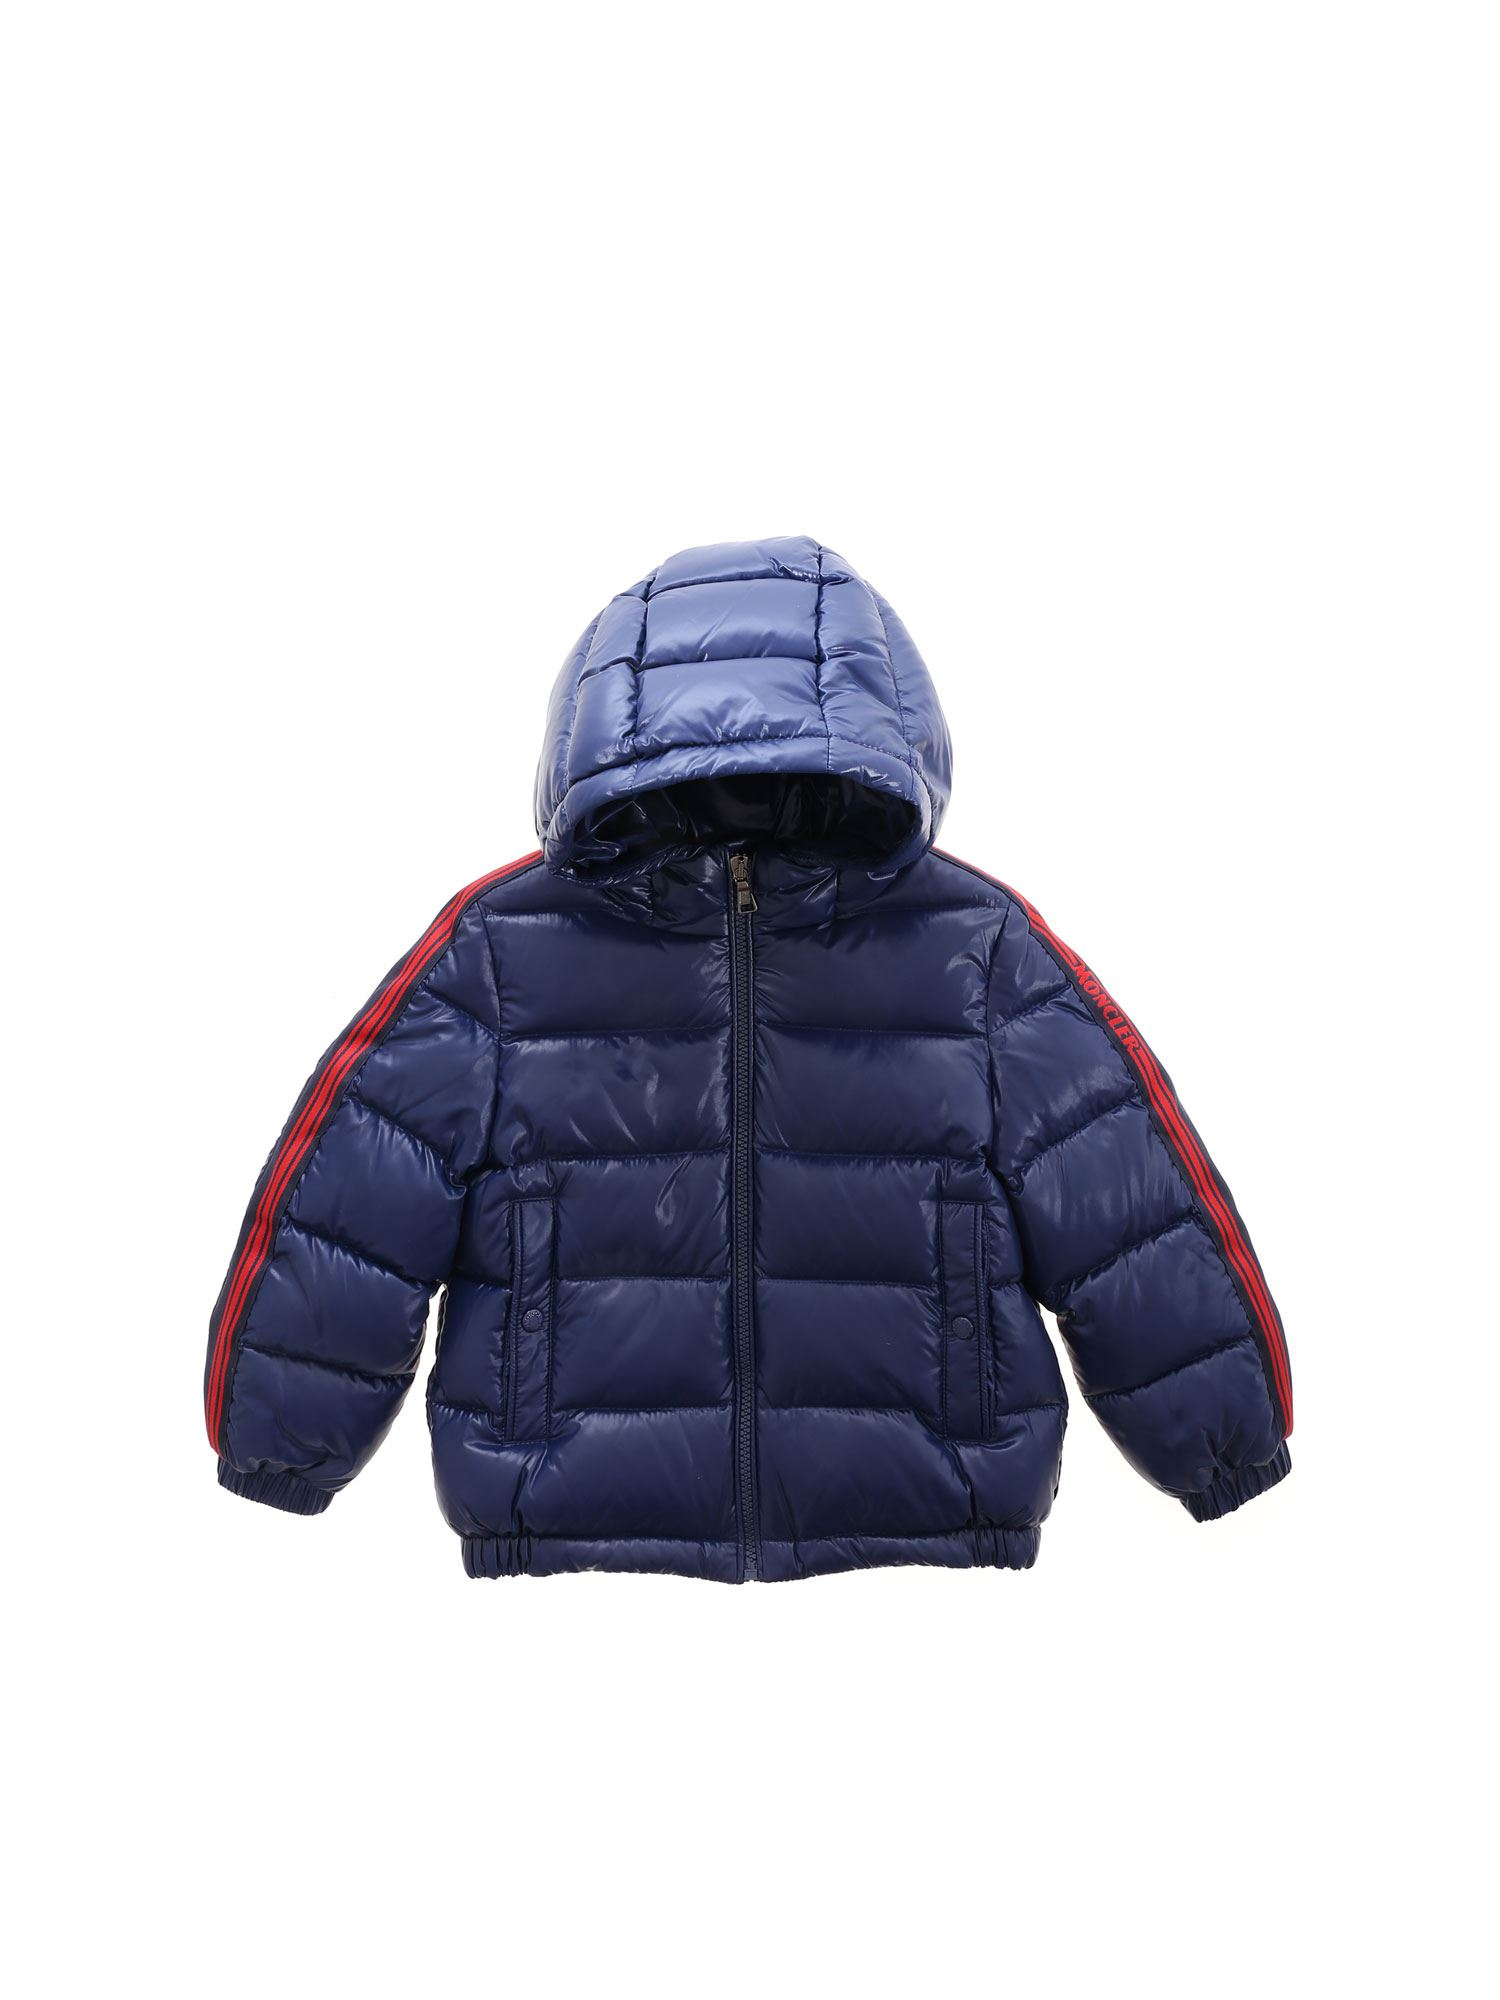 MONCLER JR Downs AL DOWN JACKET IN BLUE